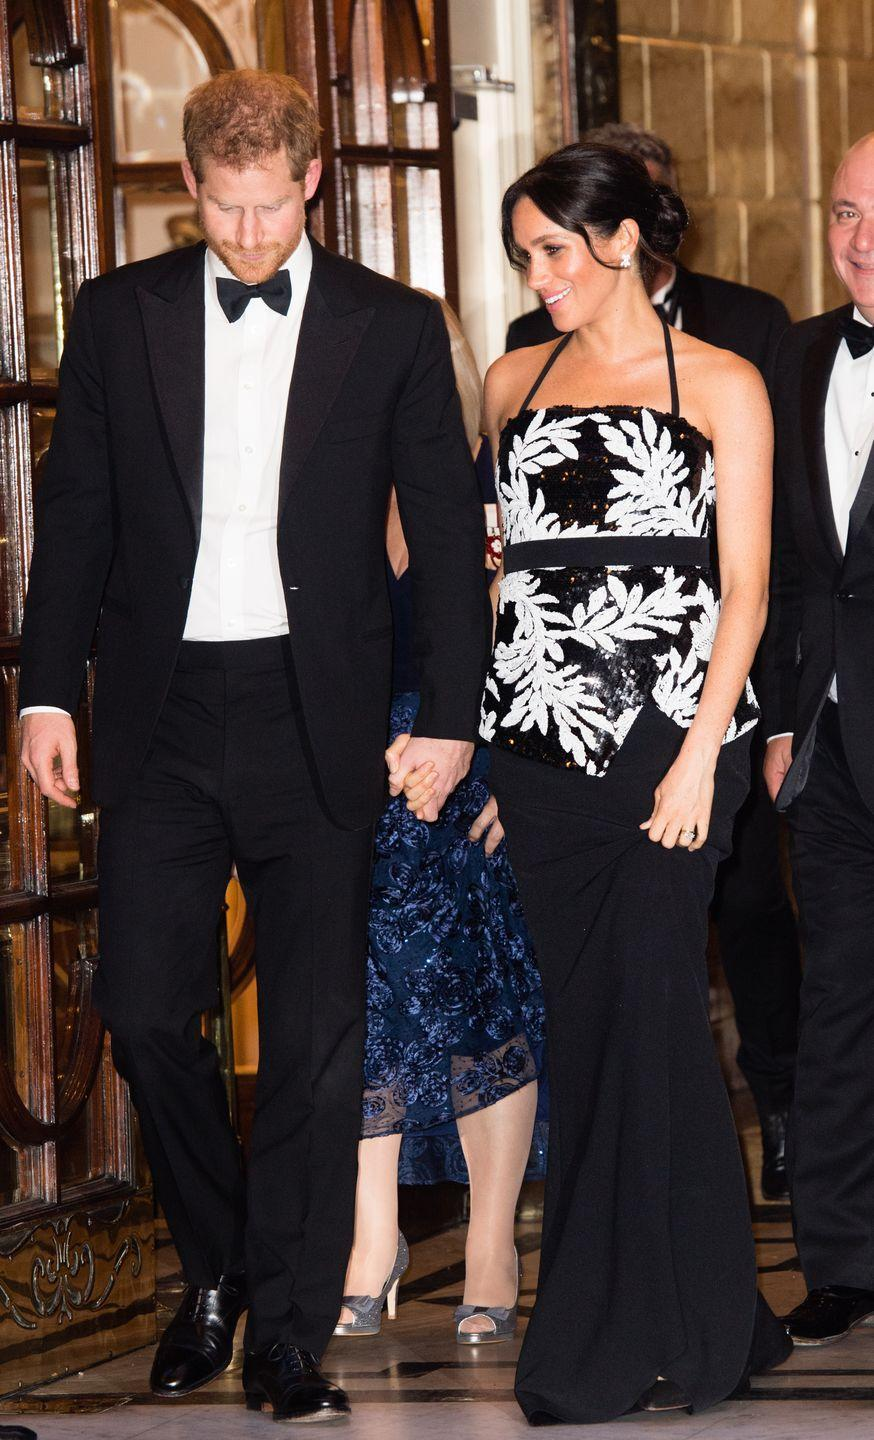 """<p>Arriving at the London Palladium, the pregnant royal looked sparkly in a £895 sequin halter-neck top with a leaf pattern and a £850 maxi skirt by London-based designer <a href=""""https://www.safiyaa.com/collections/tops/products/malaya-strapless-top"""" rel=""""nofollow noopener"""" target=""""_blank"""" data-ylk=""""slk:Safiyaa"""" class=""""link rapid-noclick-resp"""">Safiyaa</a>, whose clothing she first wore <a href=""""https://www.elle.com/uk/fashion/celebrity-style/a23813894/meghan-markle-prince-harry-royal-tour-style-outfits/"""" rel=""""nofollow noopener"""" target=""""_blank"""" data-ylk=""""slk:during her royal tour of Fiji last month"""" class=""""link rapid-noclick-resp"""">during her royal tour of Fiji last month</a>.</p><p>She teamed the look with a black and gold clutch bag, <a href=""""https://www.farfetch.com/uk/shopping/women/aquazzura-simply-irresistible-pumps-item-12141243.aspx?storeid=11146&size=26&pid=googleadwords_int&af_channel=Search&c=629762120&af_c_id=629762120&af_keywords=aud-301601826227%3Apla-383089413039&af_adset_id=52804059504&af_ad_id=218064673083&is_retargeting=true&shopping=yes&gclid=Cj0KCQiA_s7fBRDrARIsAGEvF8Qg63WdSbrlYG0AqwP-LgbYQpBffN-YMnO6vLsSrmyeL2NhnQMMsdcaAgPIEALw_wcB"""" rel=""""nofollow noopener"""" target=""""_blank"""" data-ylk=""""slk:black high-heeled Aquazzura pumps"""" class=""""link rapid-noclick-resp"""">black high-heeled Aquazzura pumps</a>, and <a href=""""https://www.maisonbirks.com/en/birks-snowflake-snowstorm-diamond-earrings-in-white-gold"""" rel=""""nofollow noopener"""" target=""""_blank"""" data-ylk=""""slk:Snowstorm earrings"""" class=""""link rapid-noclick-resp"""">Snowstorm earrings</a> from Canadian jewellery brand Birks.</p>"""